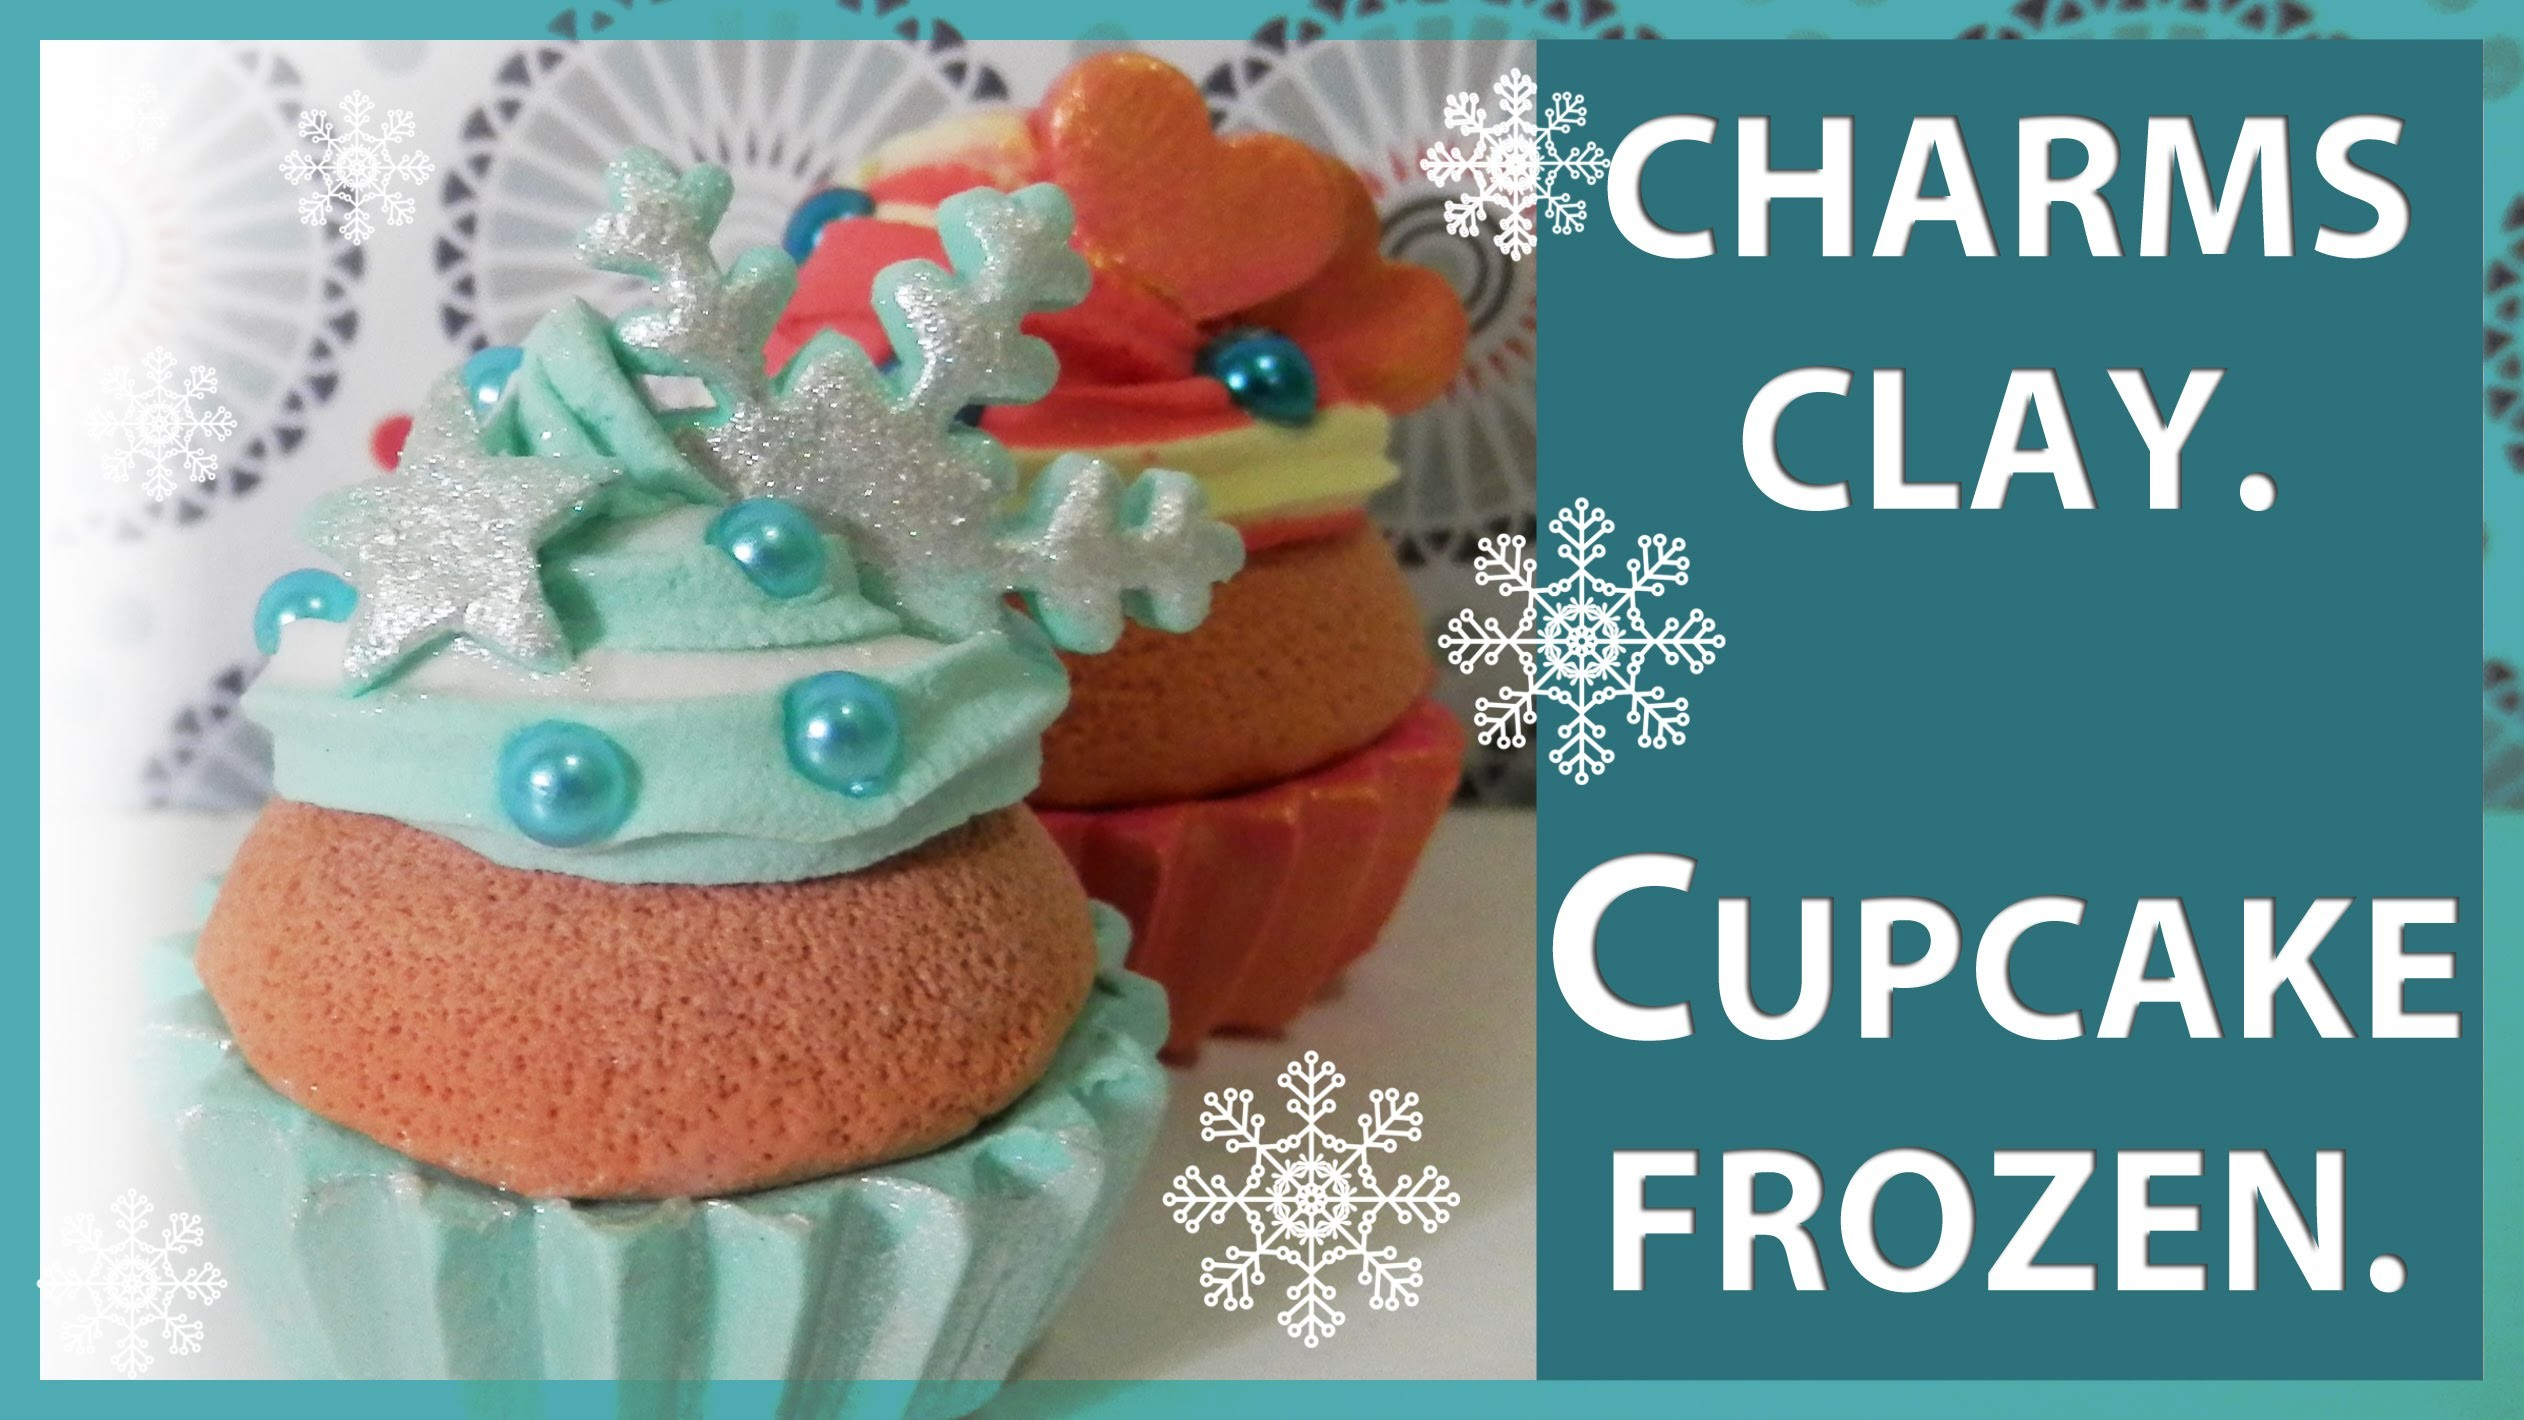 CUPCAKE TUTORIAL. PORCELANA FRIA, FIMO, PAPER CLAY. FROZEN COLORS. KAWAII AND CUTE.